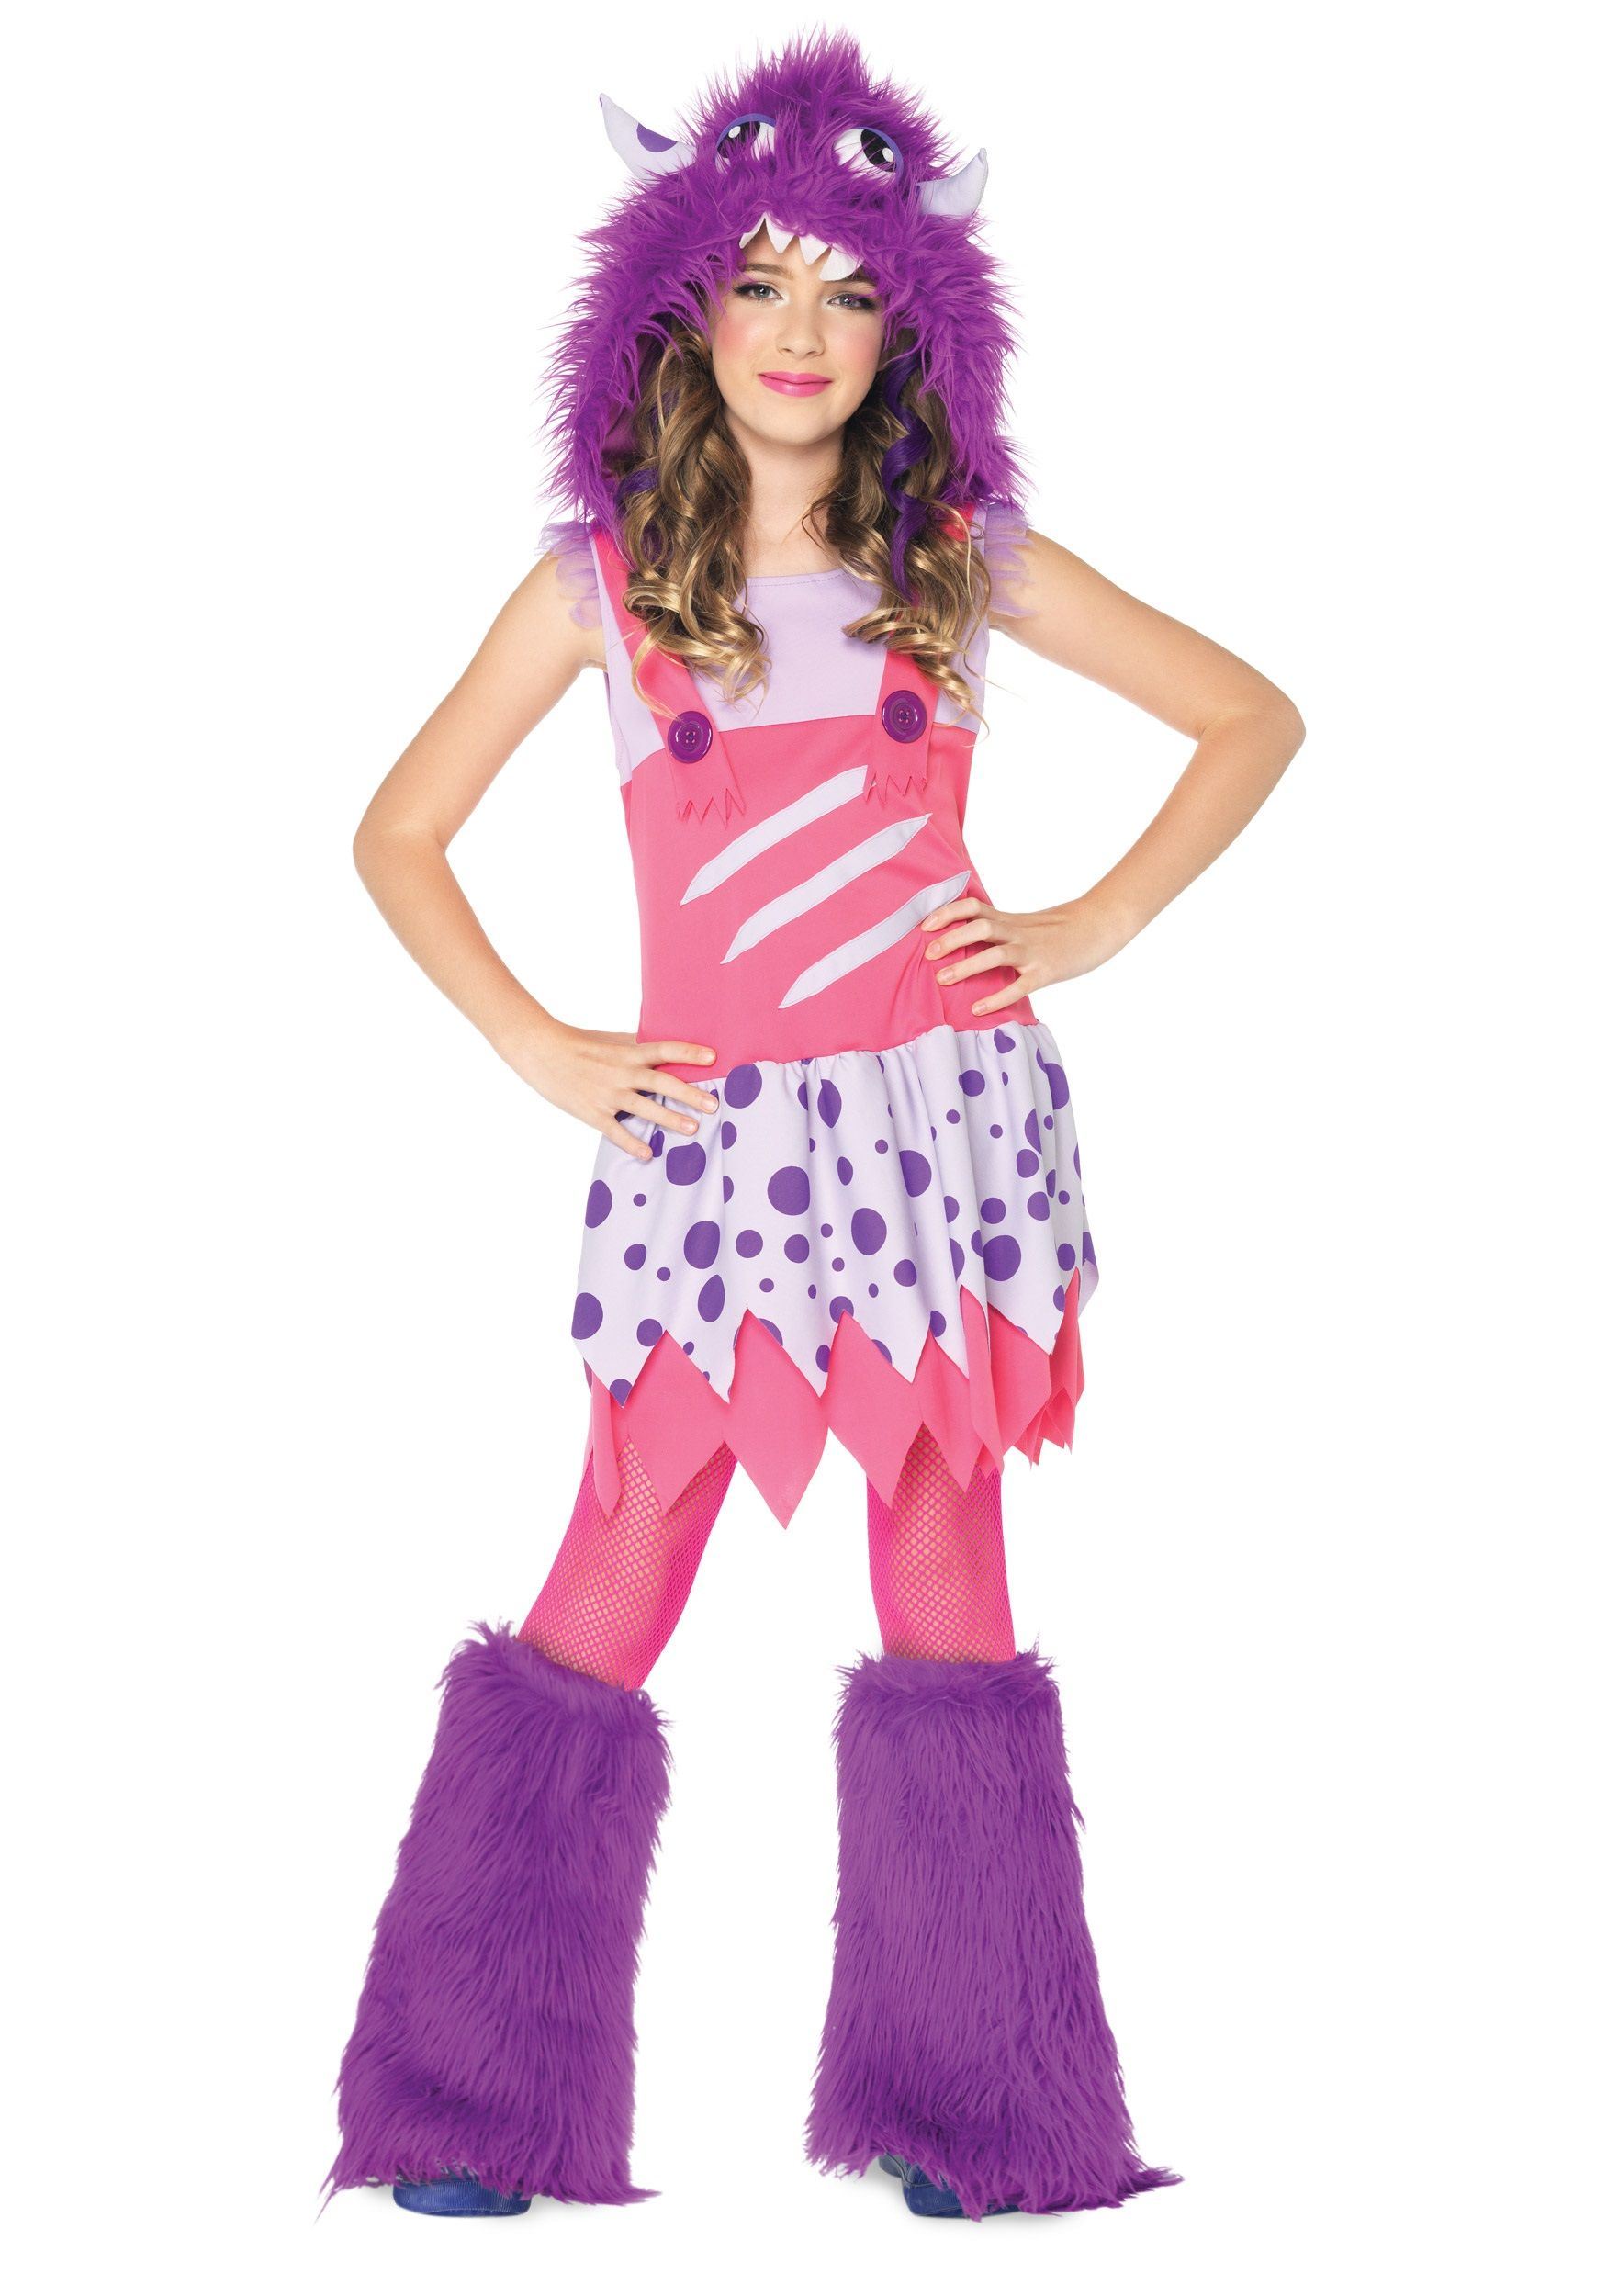 cute girl costume ideas | costume ideas classic halloween costumes